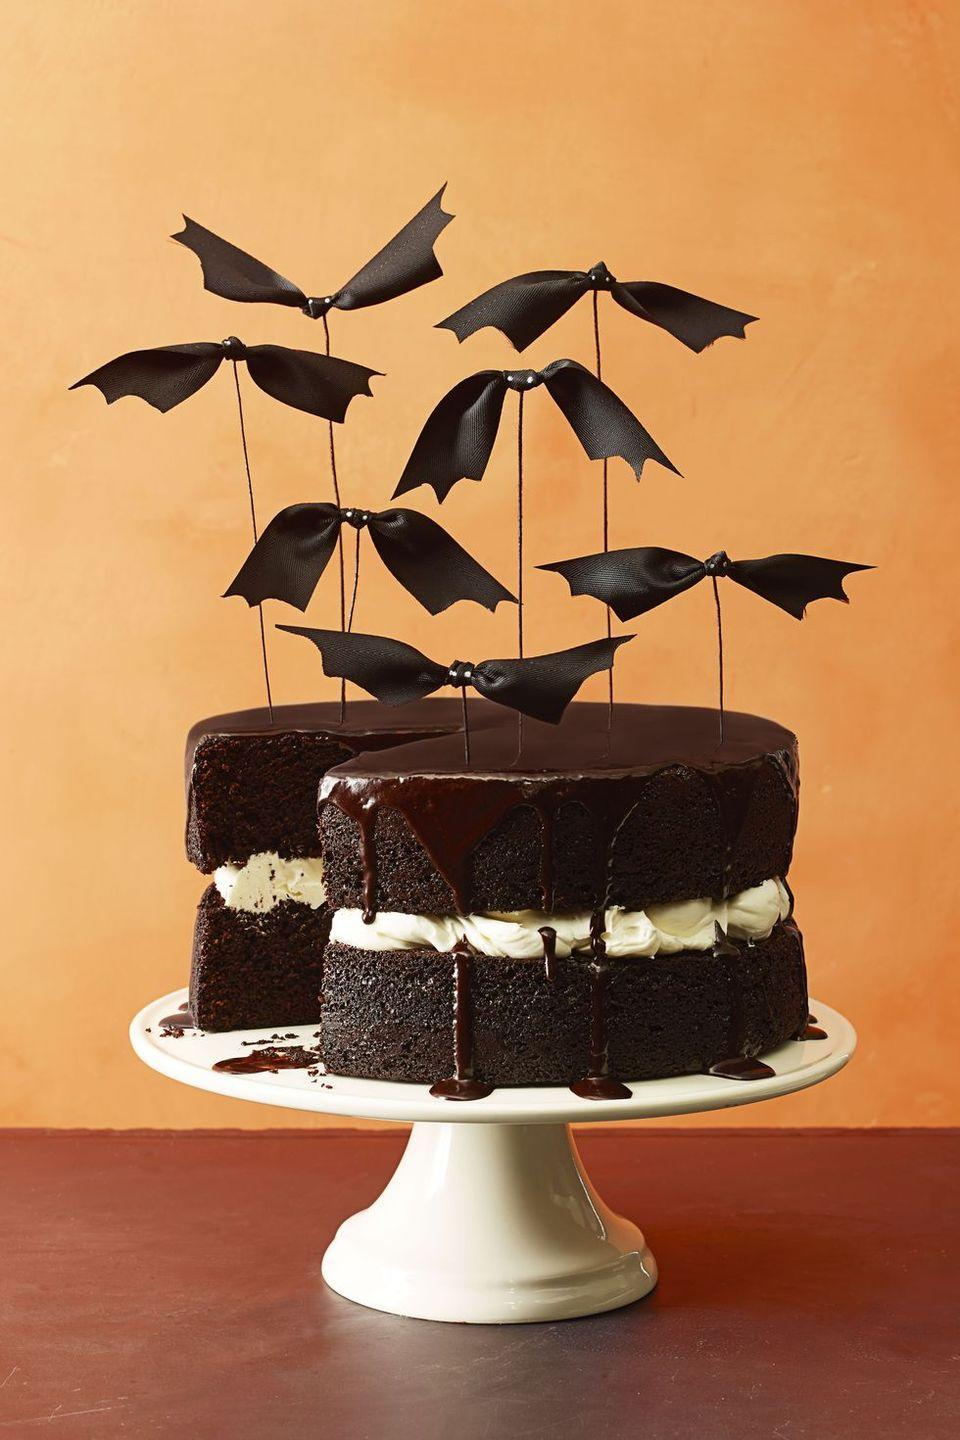 """<p>If you want your cake to steal the show this holiday, make this Brown Butter Frosting-soaked treat, and top it off with some flying bats.</p><p><em><strong>Get the recipe at <a href=""""https://www.goodhousekeeping.com/food-recipes/a16014/chocolate-pumpkin-cake-recipe-ghk1014/"""" rel=""""nofollow noopener"""" target=""""_blank"""" data-ylk=""""slk:Good Housekeeping"""" class=""""link rapid-noclick-resp"""">Good Housekeeping</a>.</strong></em></p>"""